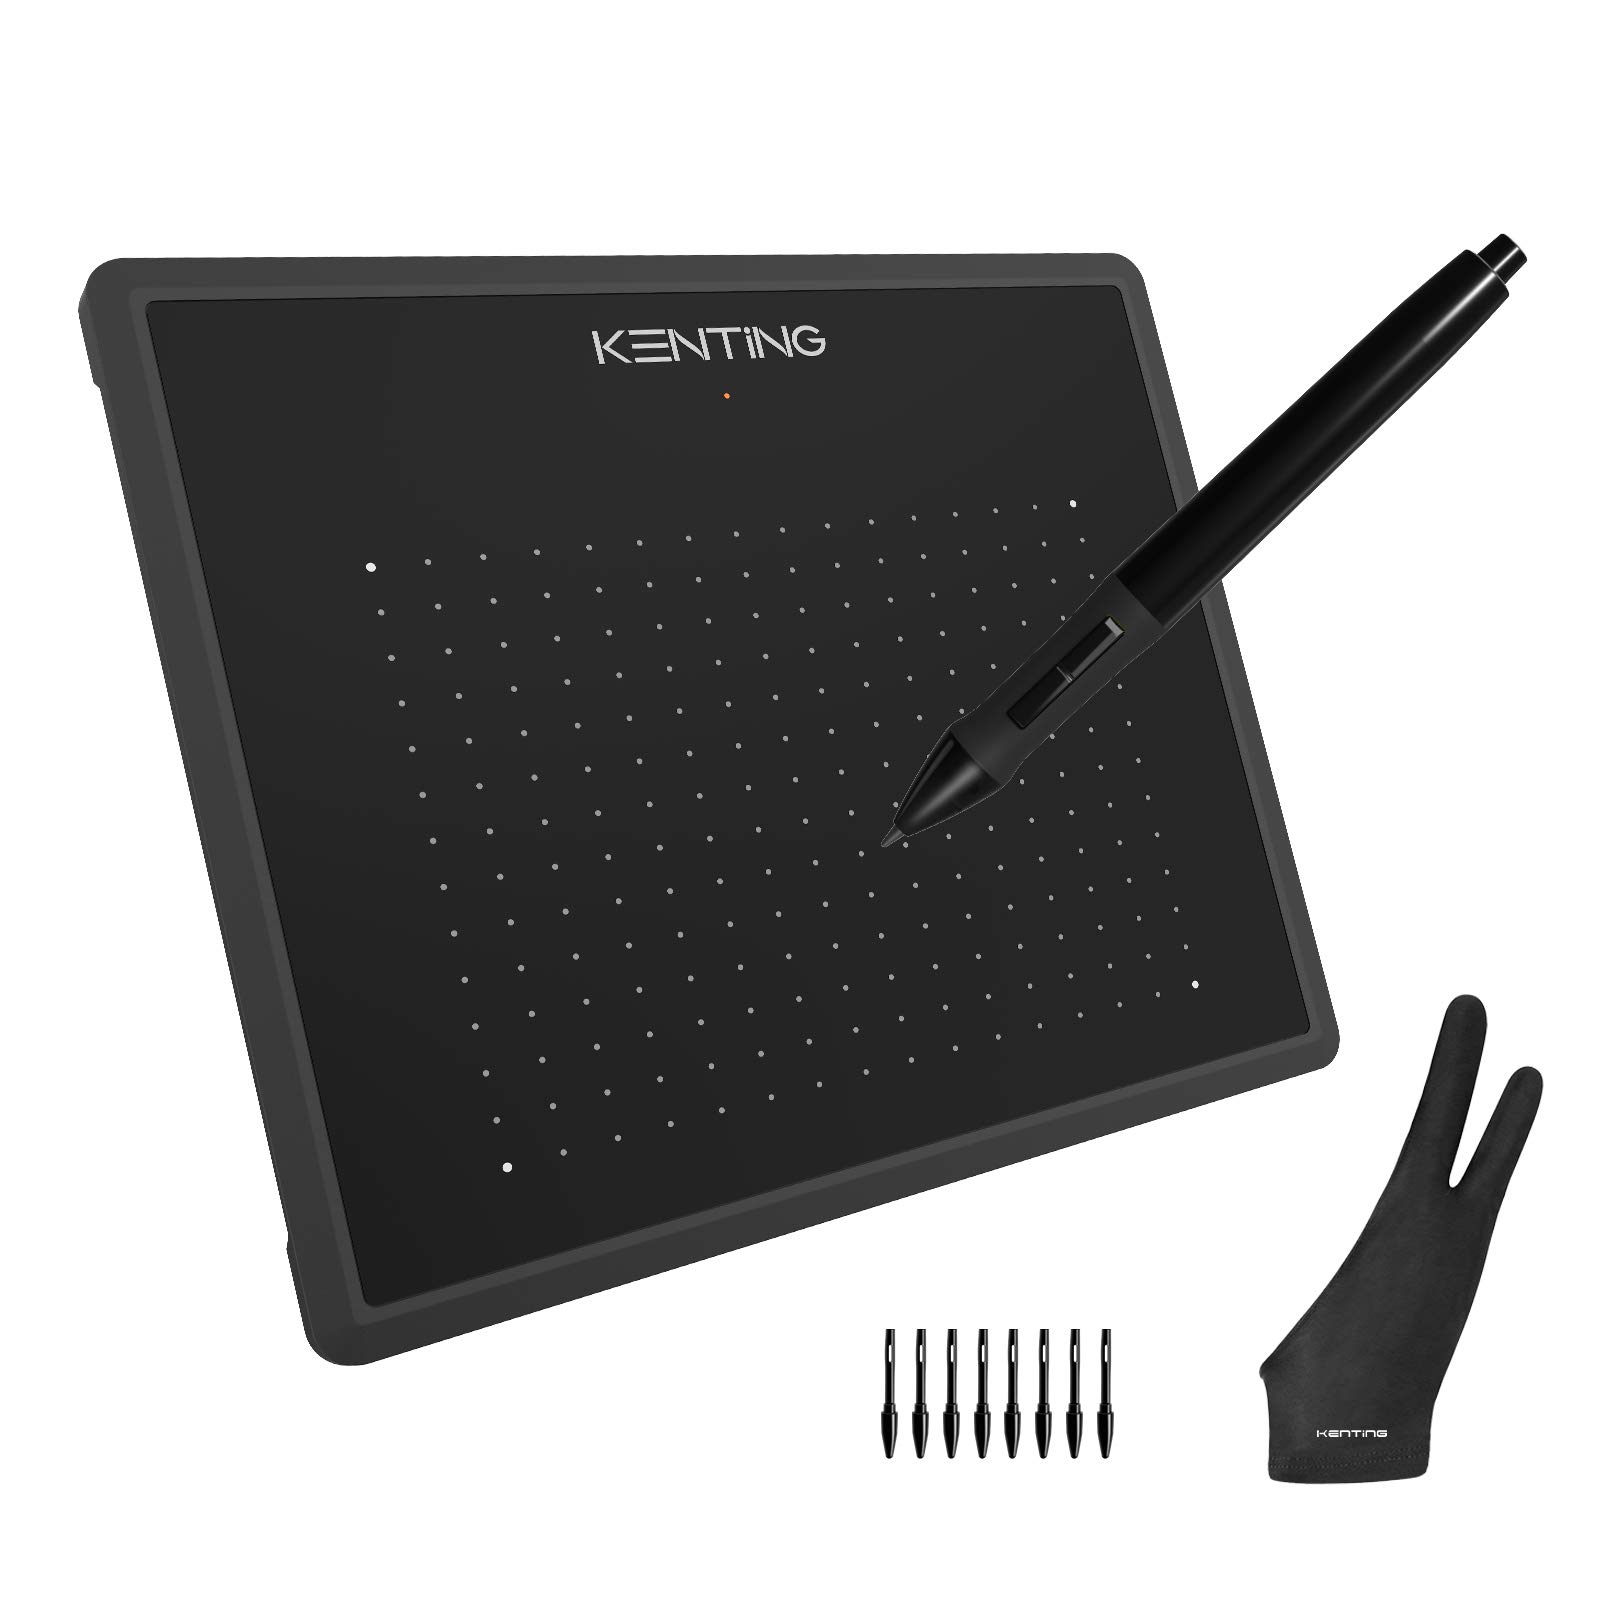 Kenting K5540 Drawing Tablet USB Graphic Tablet 5.5 x 4 inches Pen Tablet Board Kit Glove 6.7 inches OSU Tablet and Pen for Kids 4096 Levels Pressure Windows Mac Laptop Computer (Black)